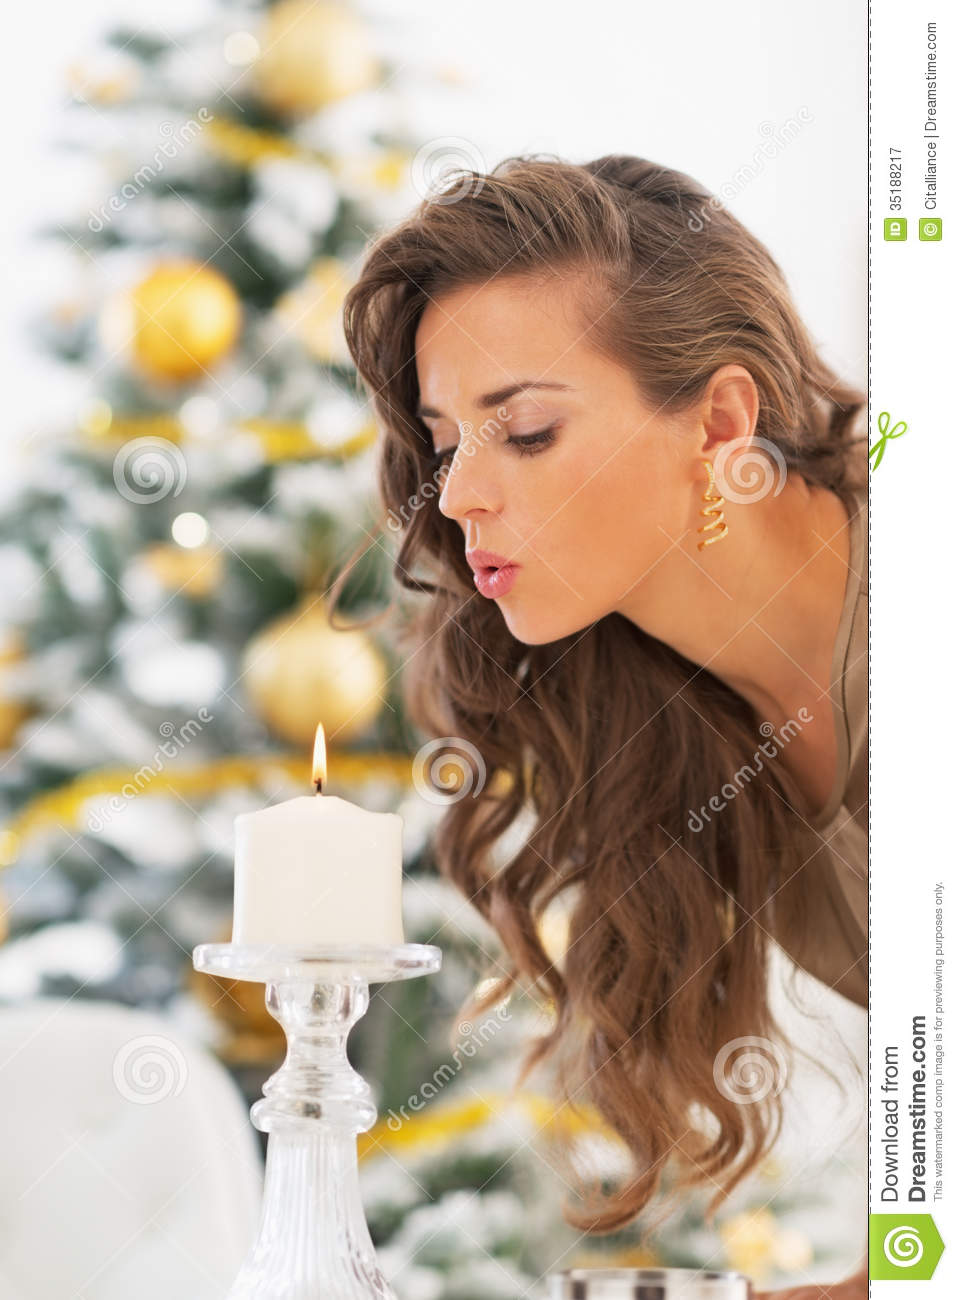 Young Woman Blowing Out Candle In Front Of Christmas Tree